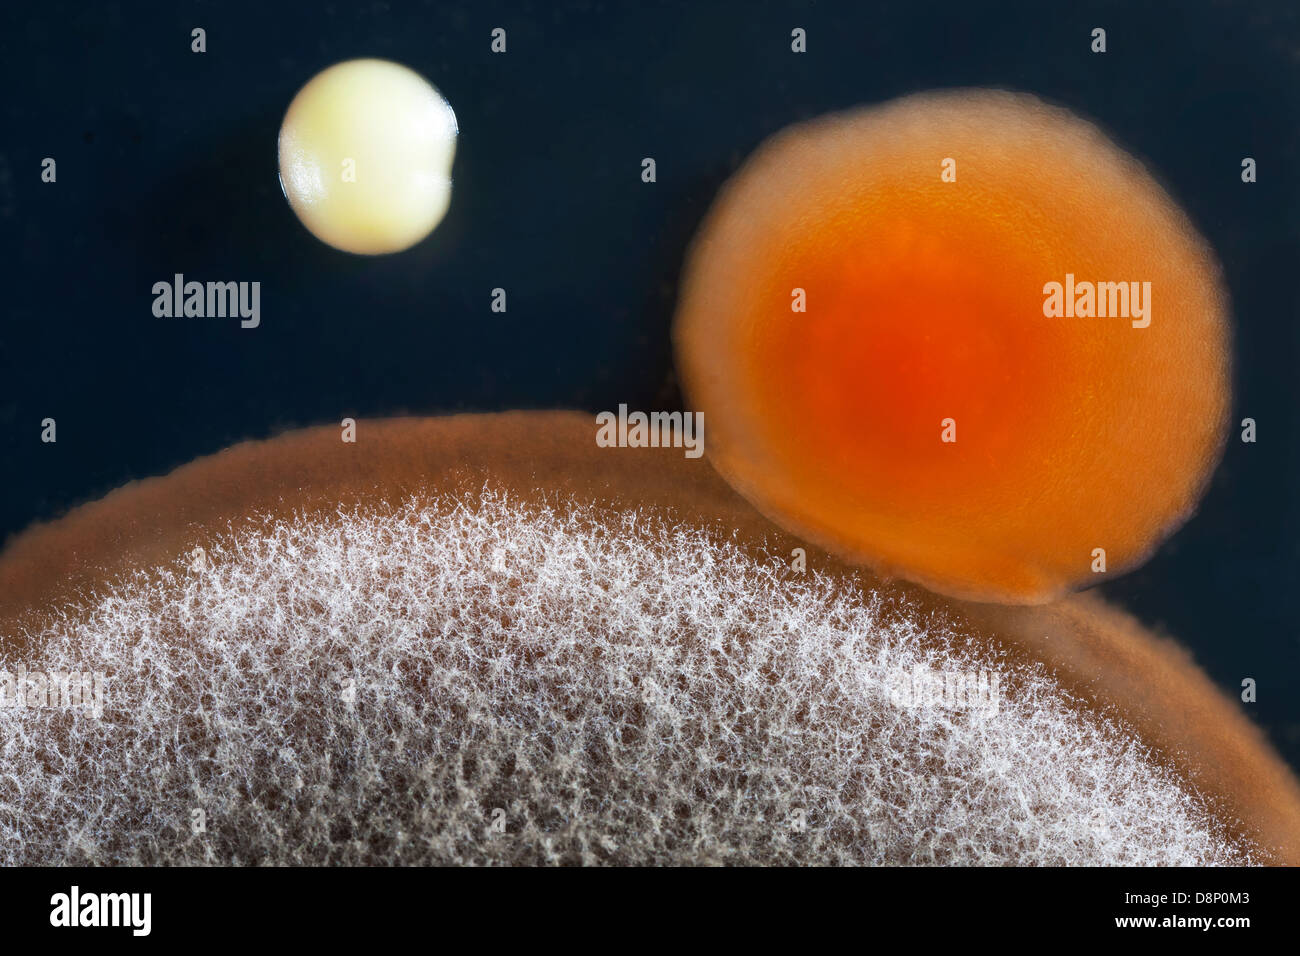 a closeup of a mold (Aspergillus niger) , and bacterial (Staphylococcus aureus) colony on an agar plate. - Stock Image